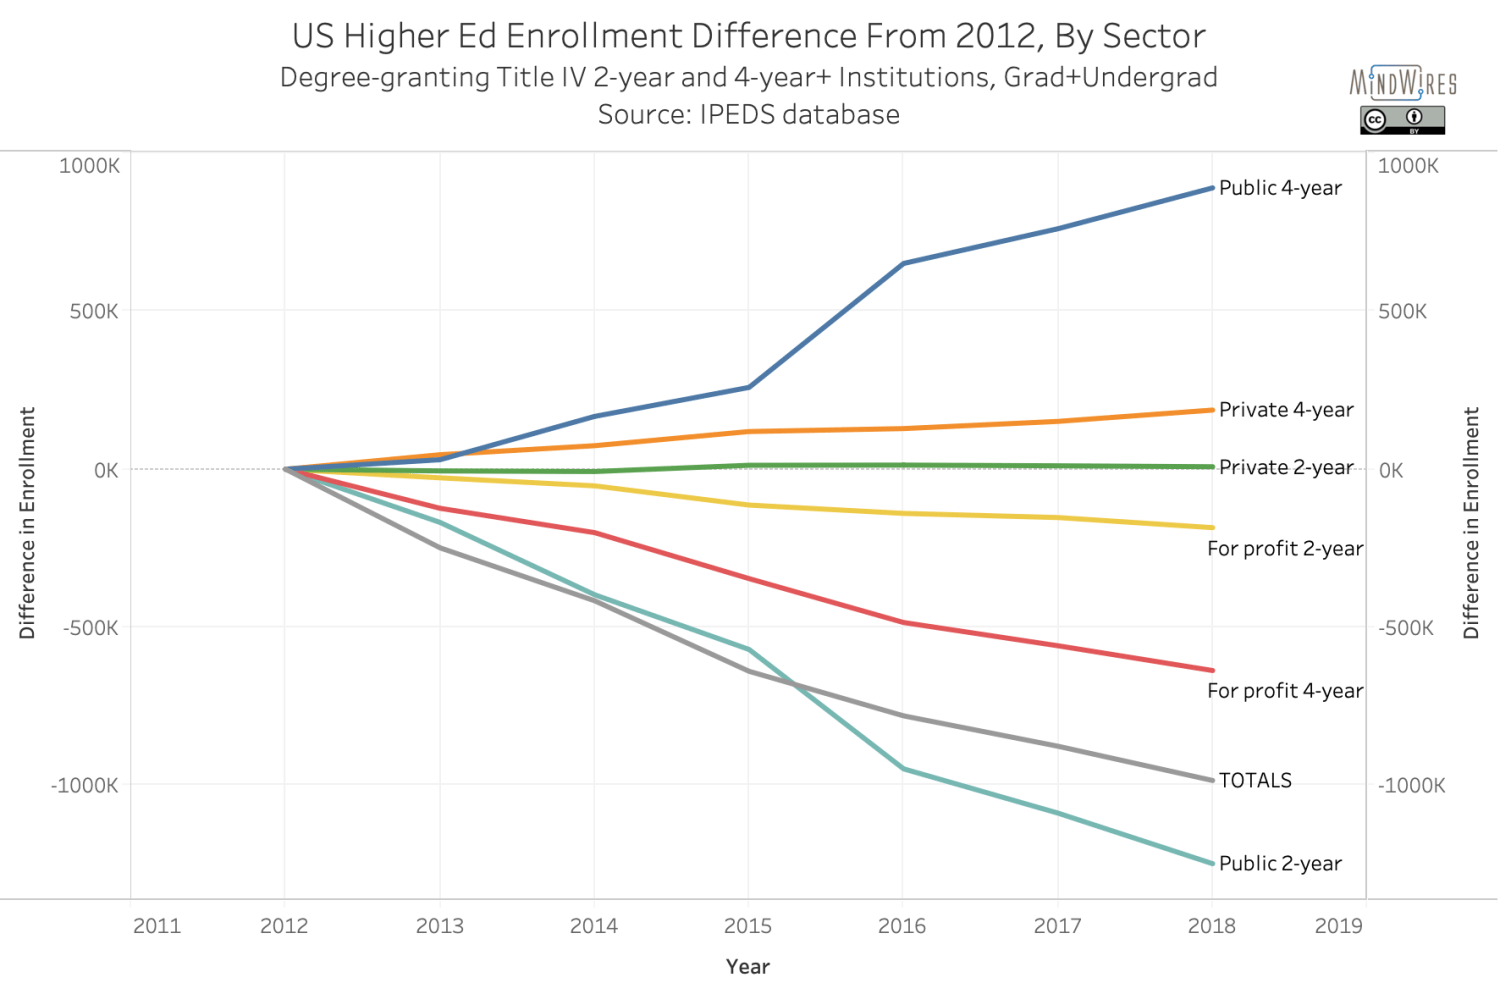 US Higher Ed Enrollment Difference From 2012, By Sector